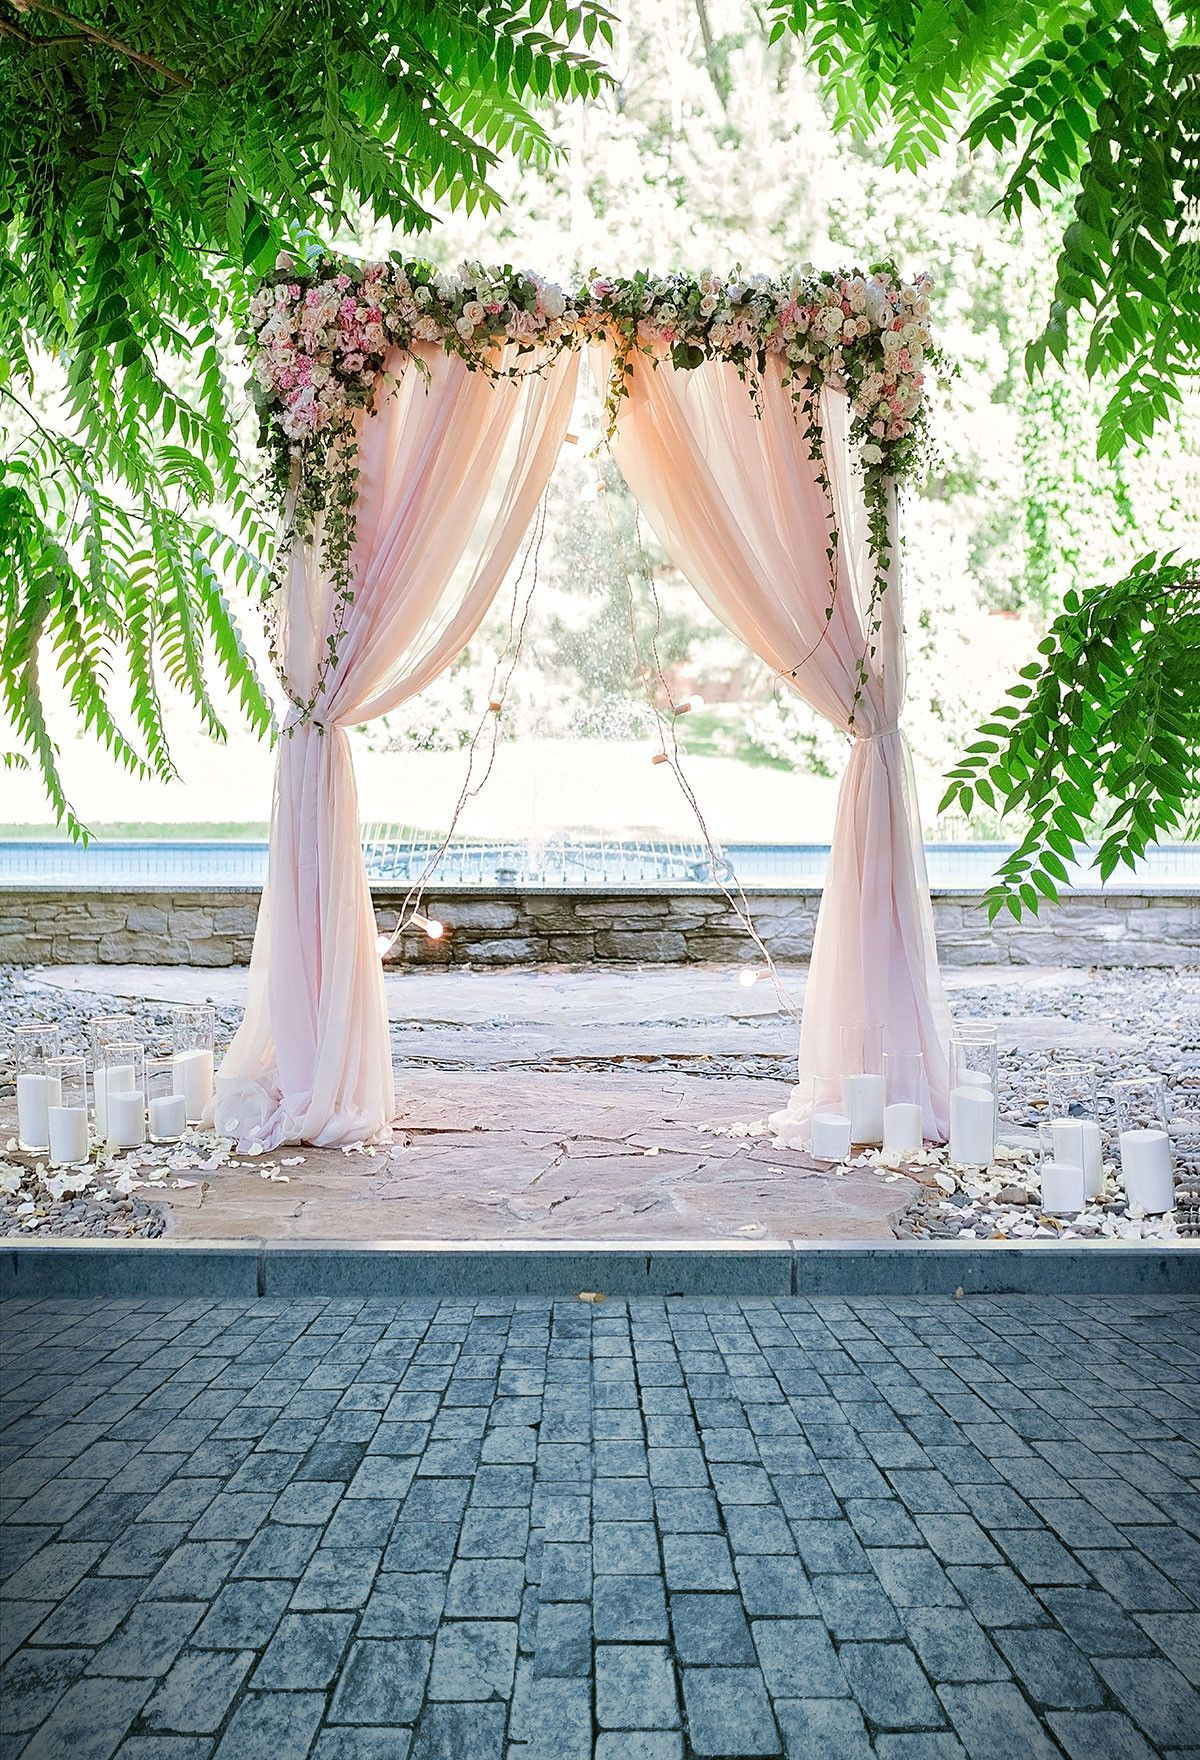 Wedding decorations stage backdrops october 2018 Wedding Backdrop Wedding Ceremony Backdrop Flower Backgrounds J